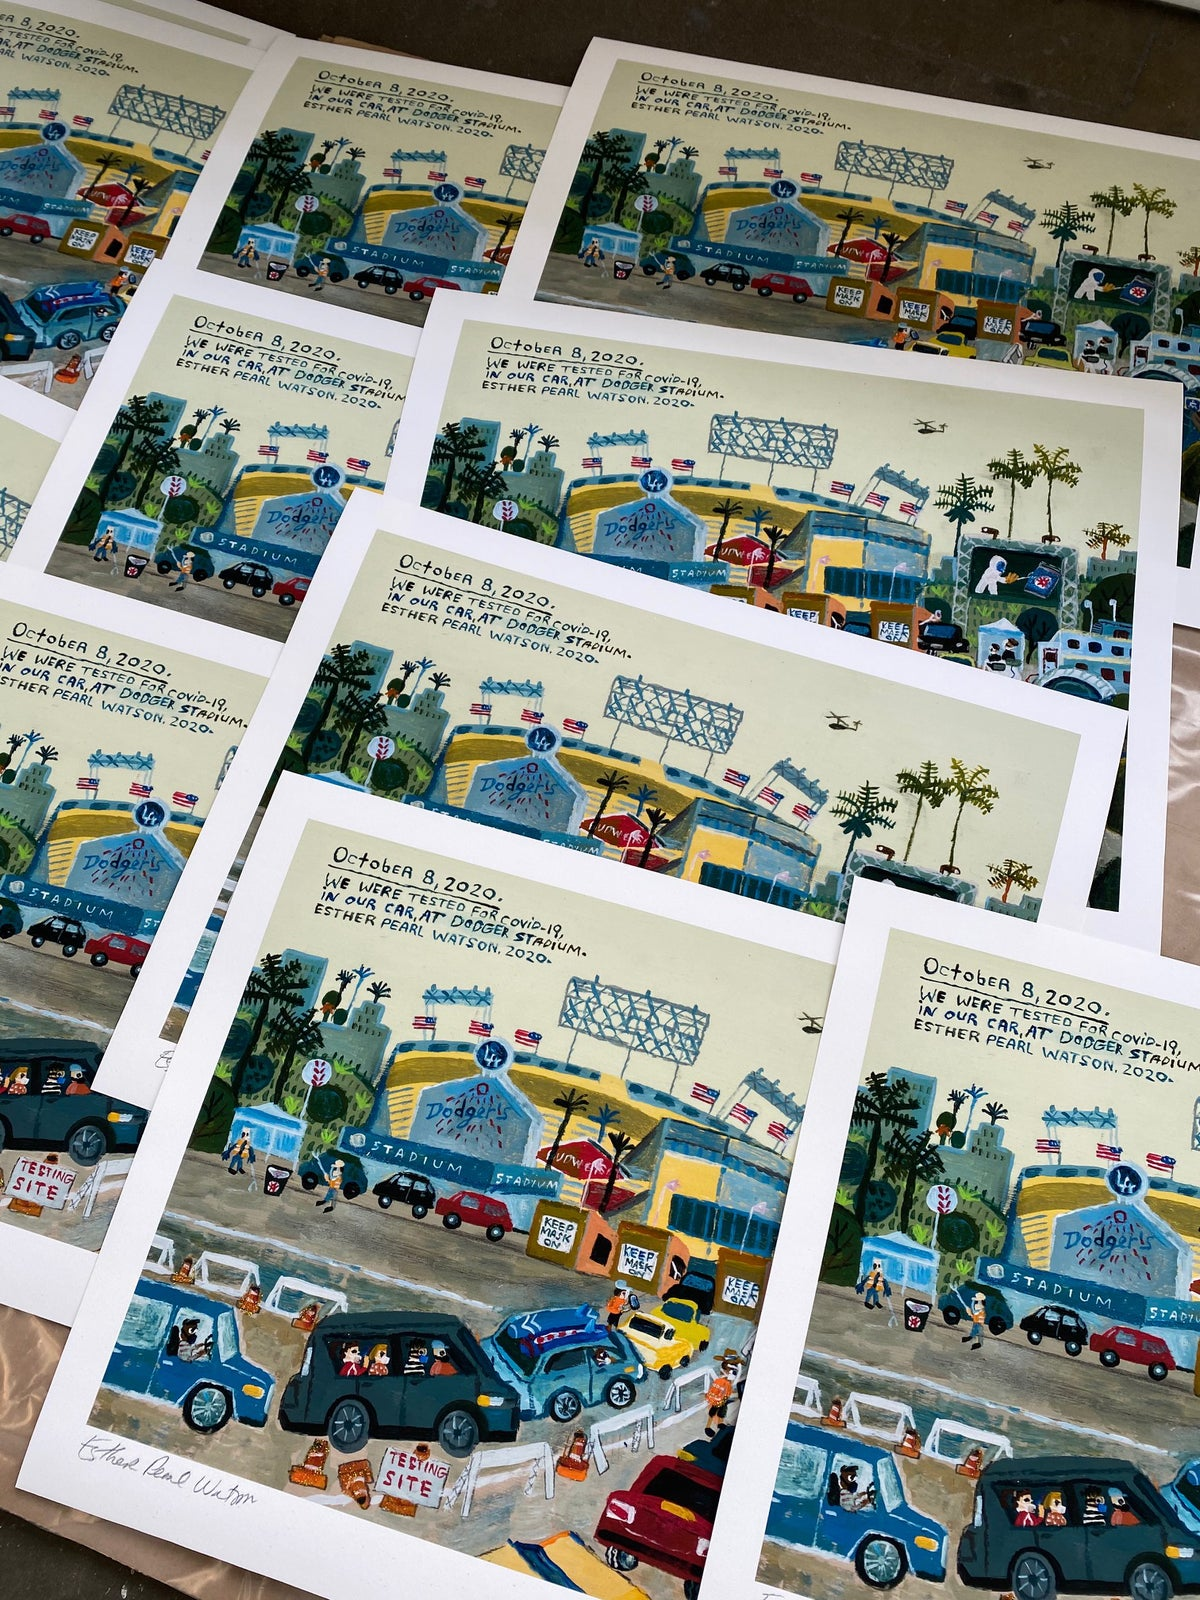 (Esther Pearl Watson) Dodger Stadium Covid print